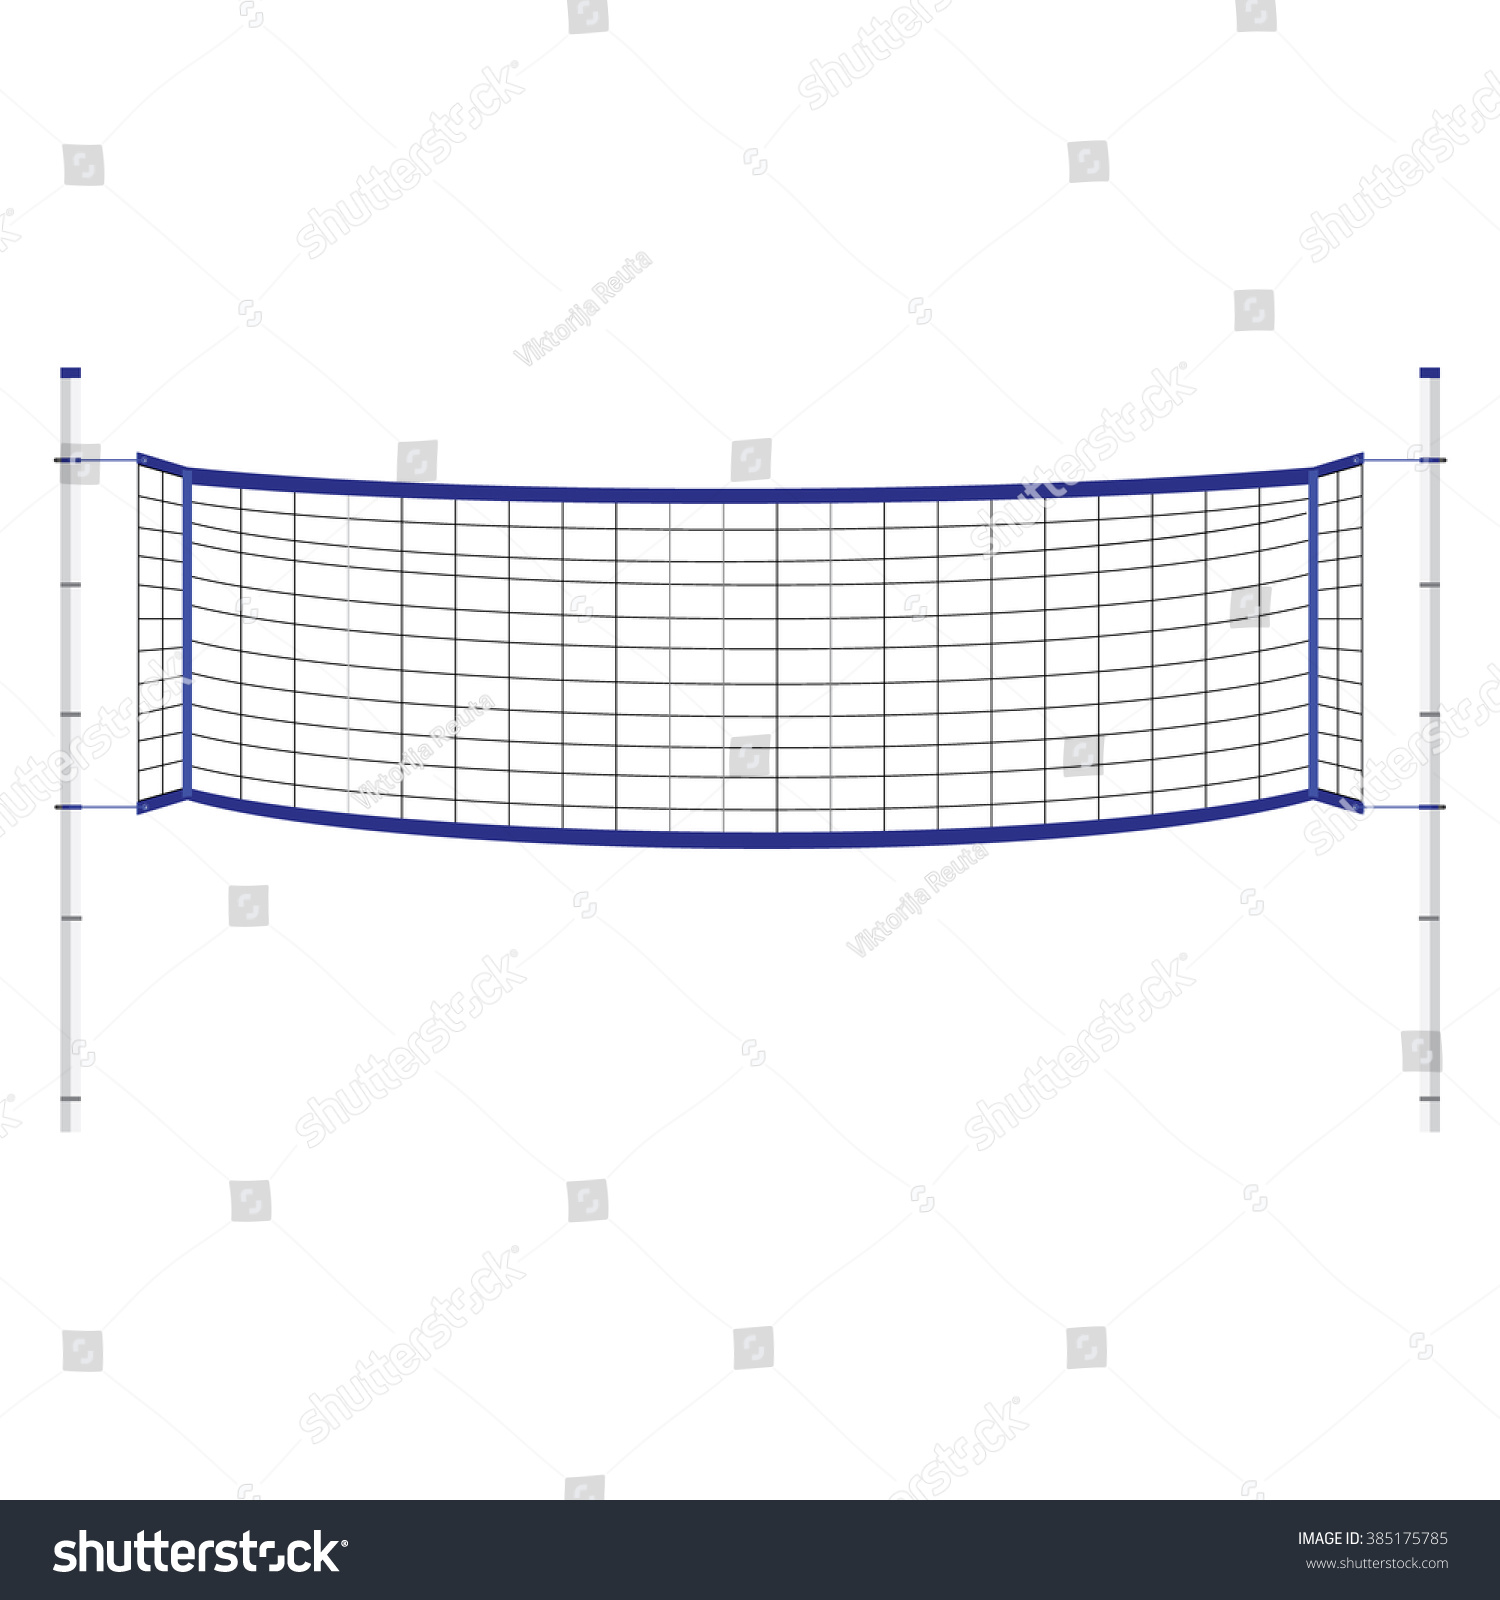 raster illustration beach volleyball net blue stock illustration rh shutterstock com Volleyball Court Dimensions Volleyball Setting Diagram